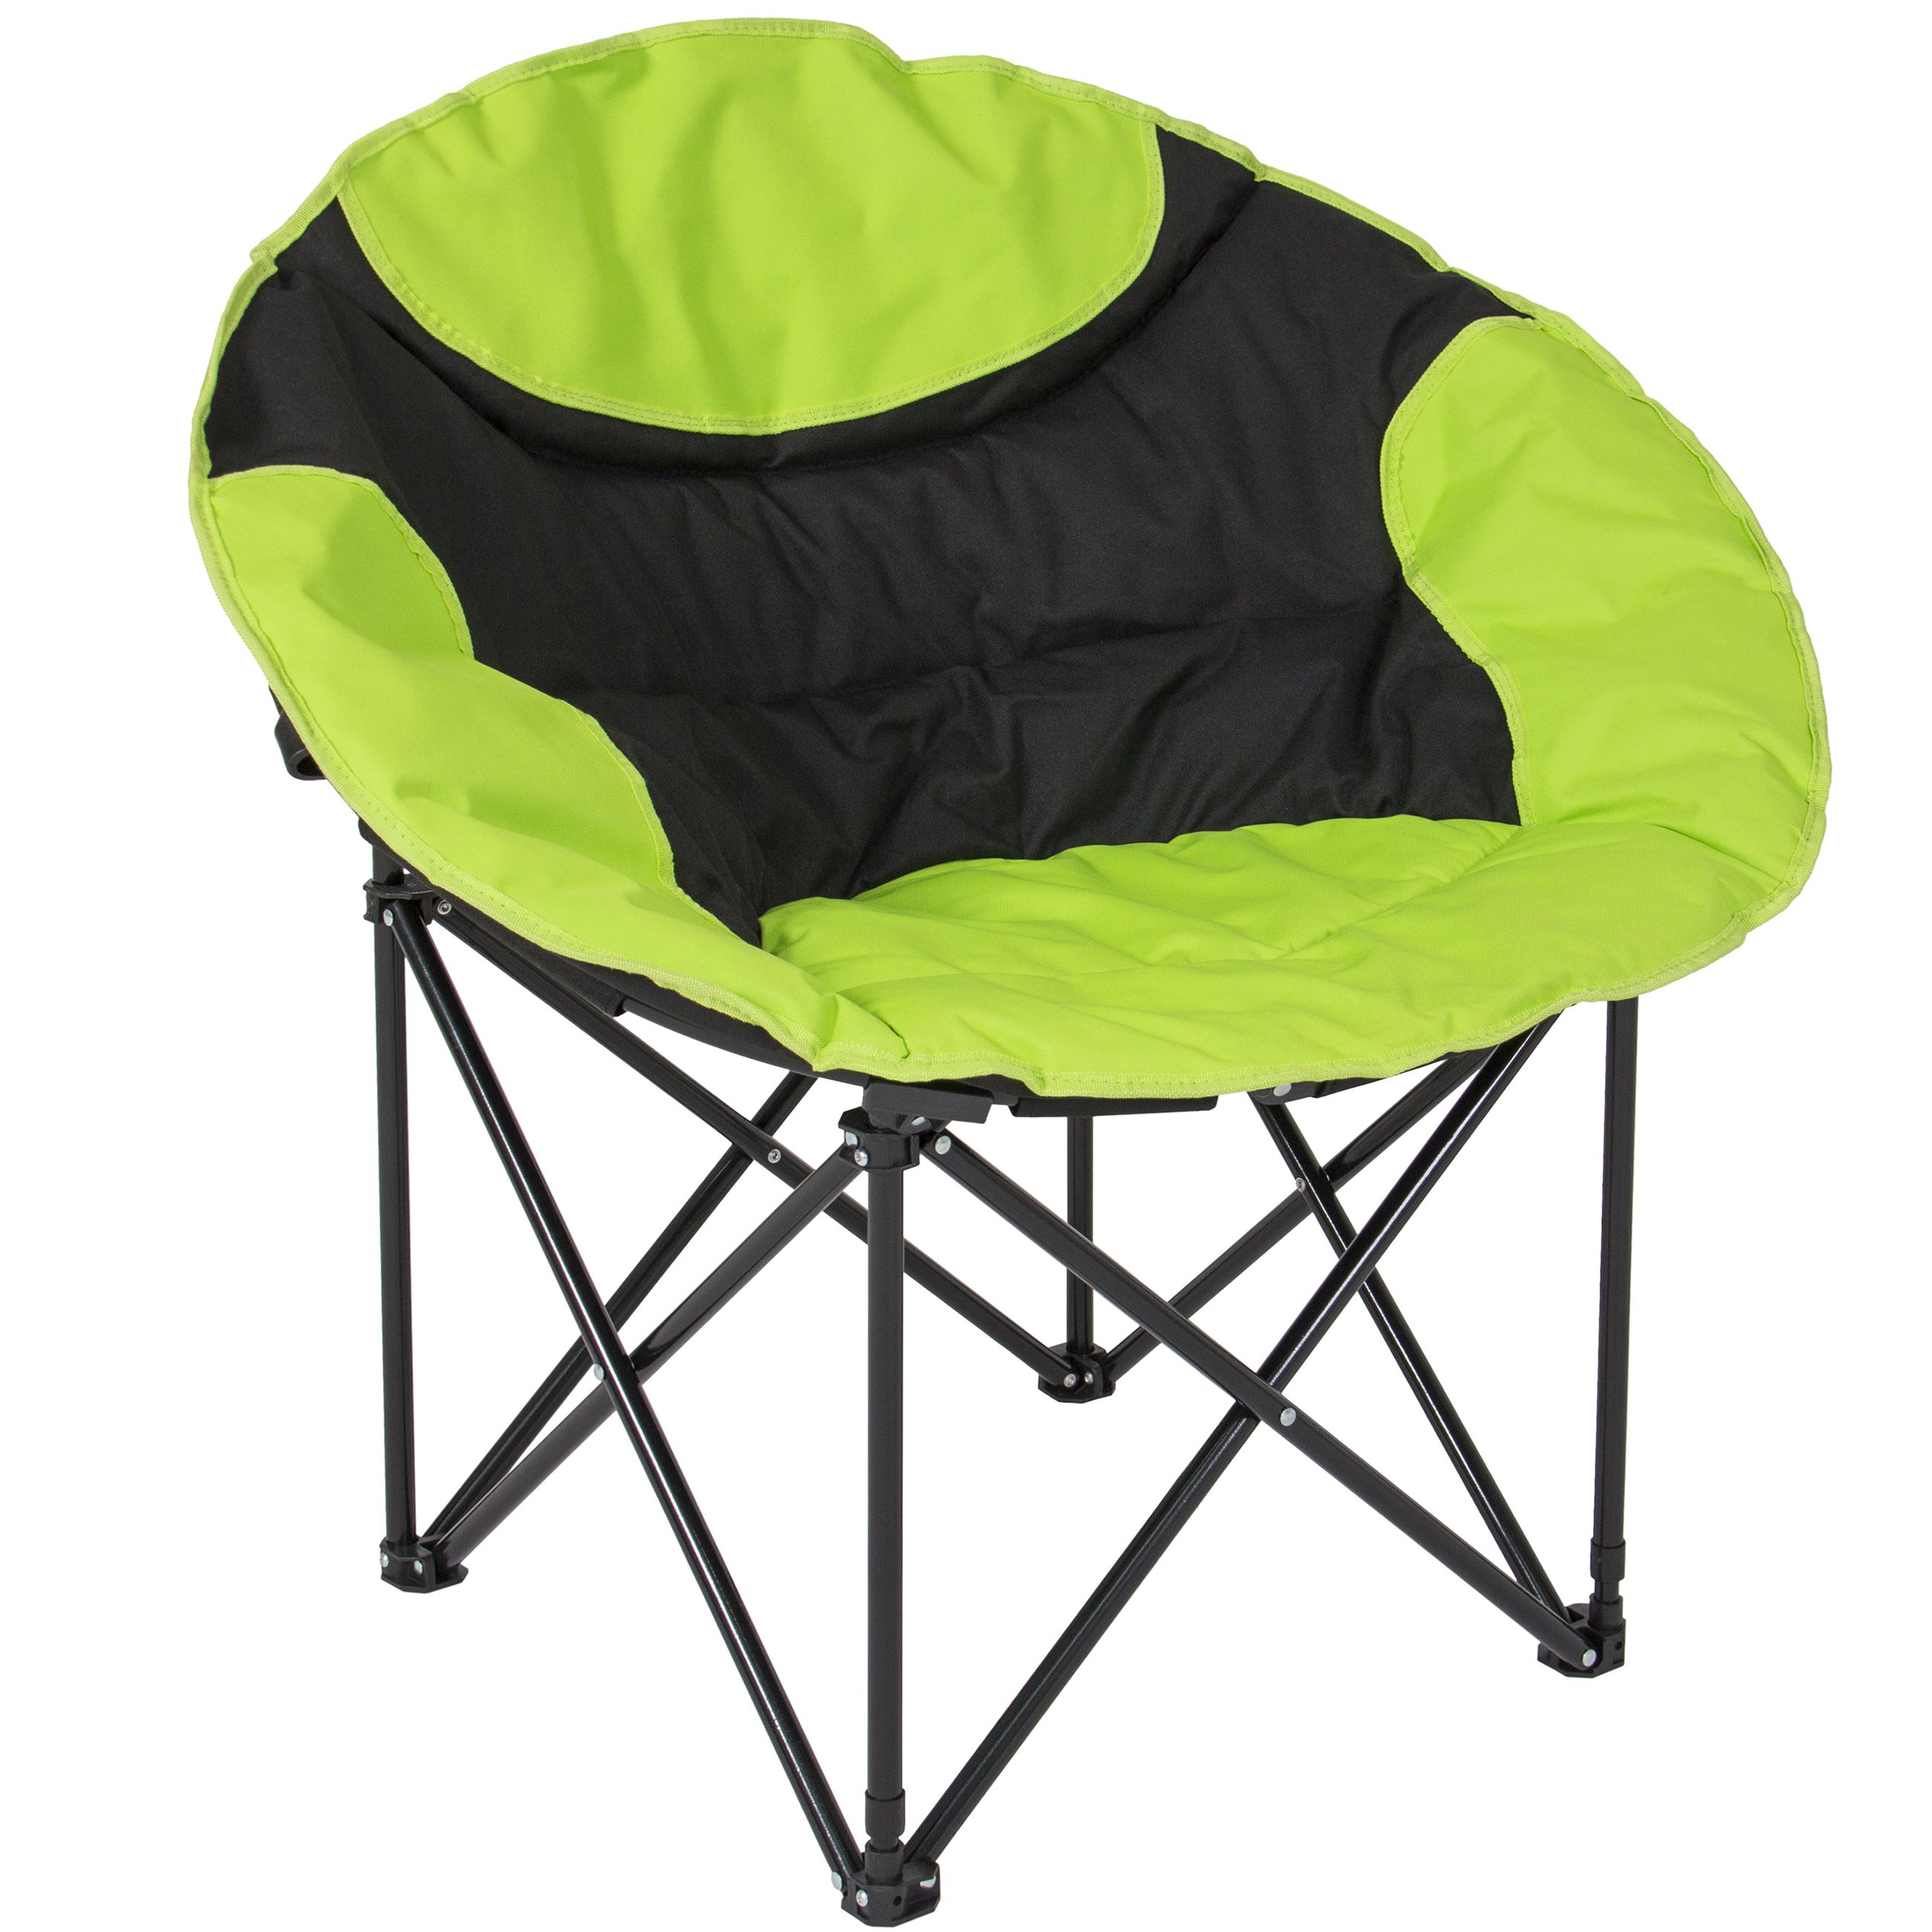 best choice products folding lightweight moon camping chair outdoor sport - green